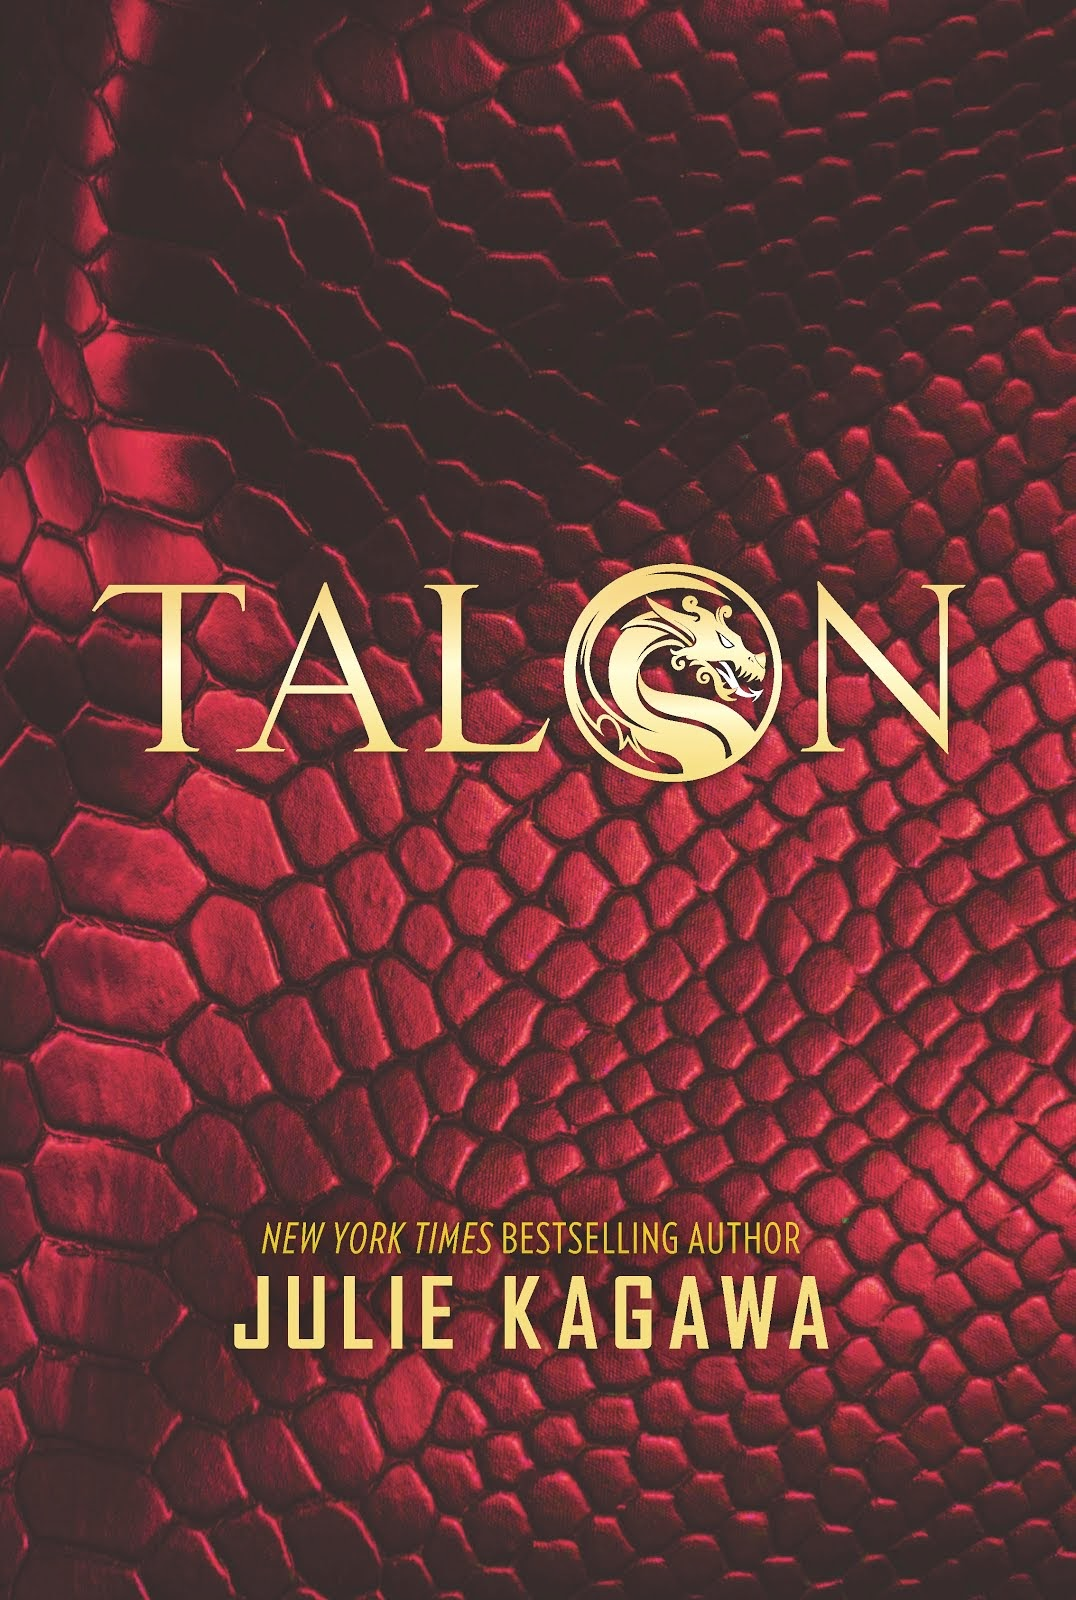 Want a signed copy of TALON by Julie Kagawa?